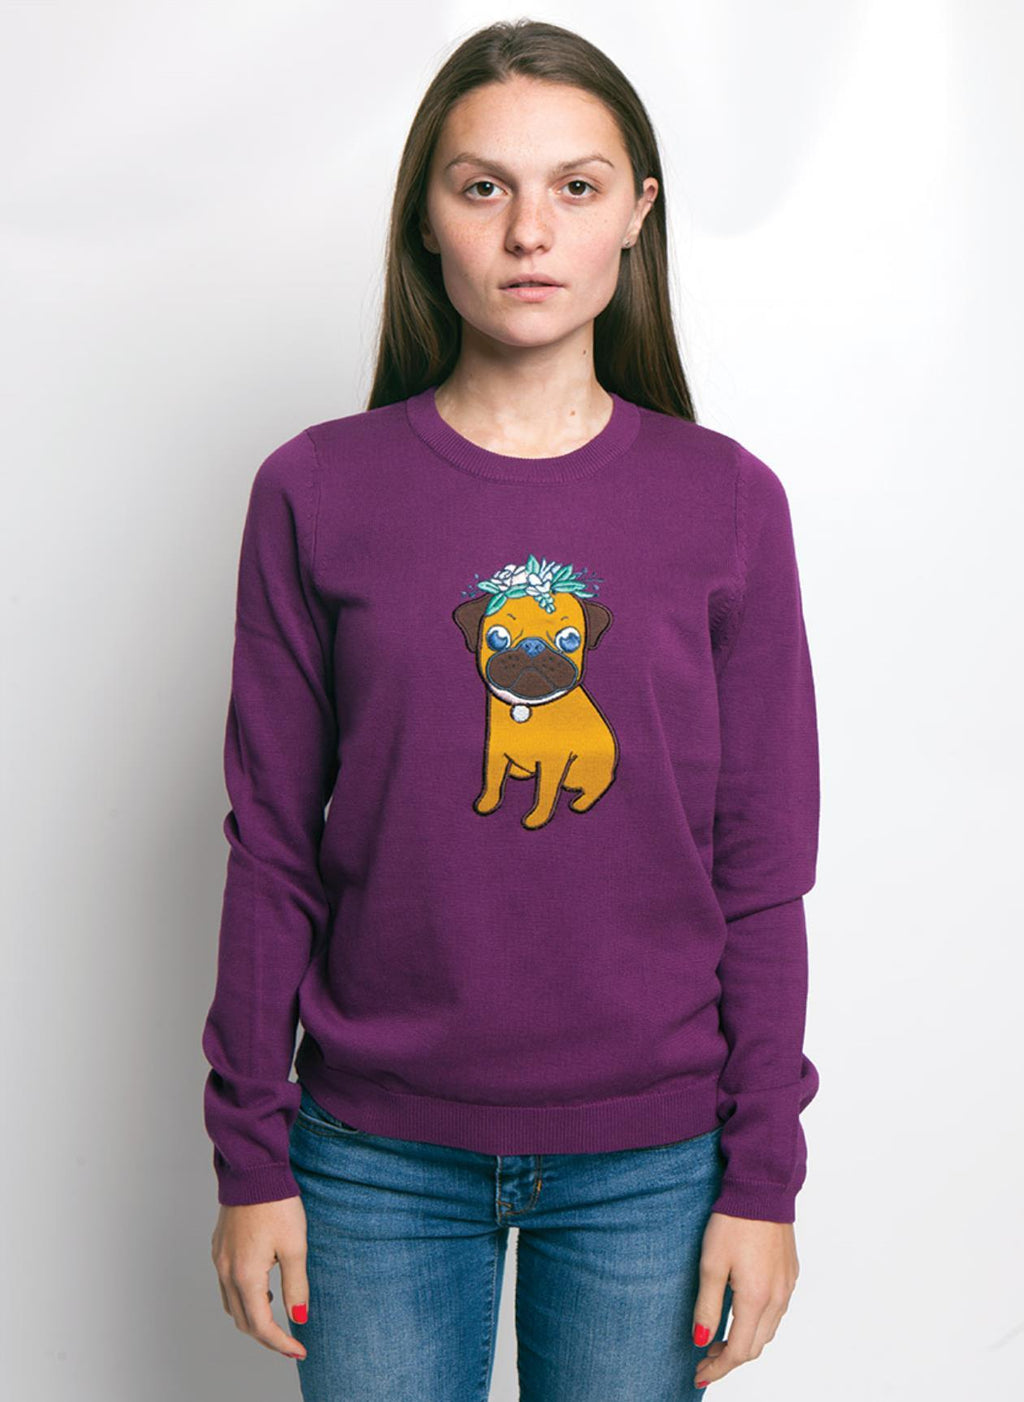 PURPLE SWEATER WITH A COLORFUL PUG DOG, ON WOMEN MODEL ARMS TO SIDES